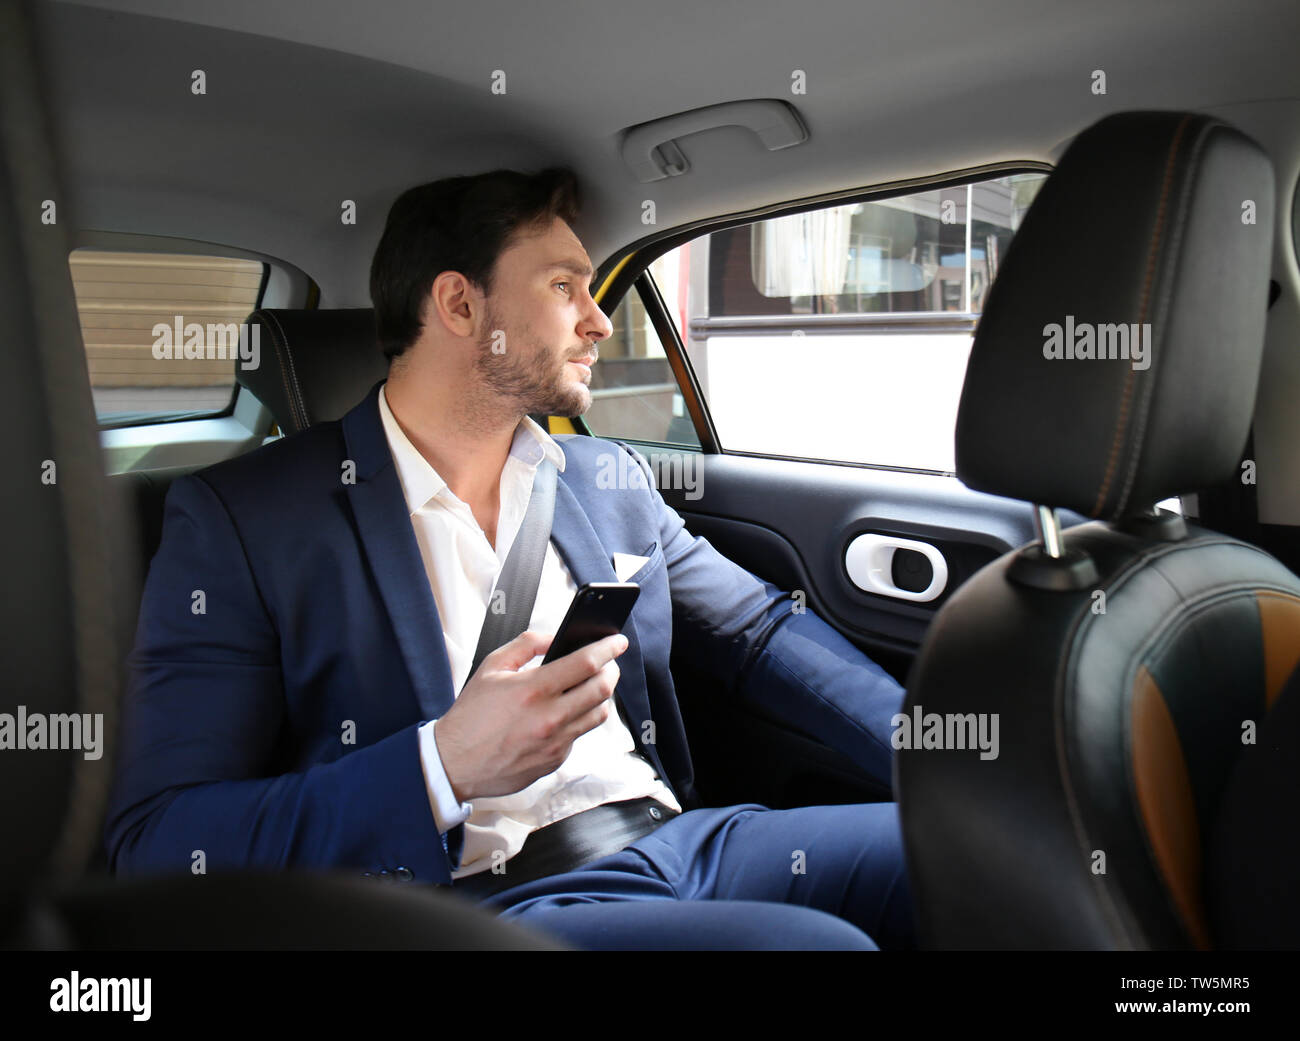 Handsome man with phone sitting in taxi car - Stock Image